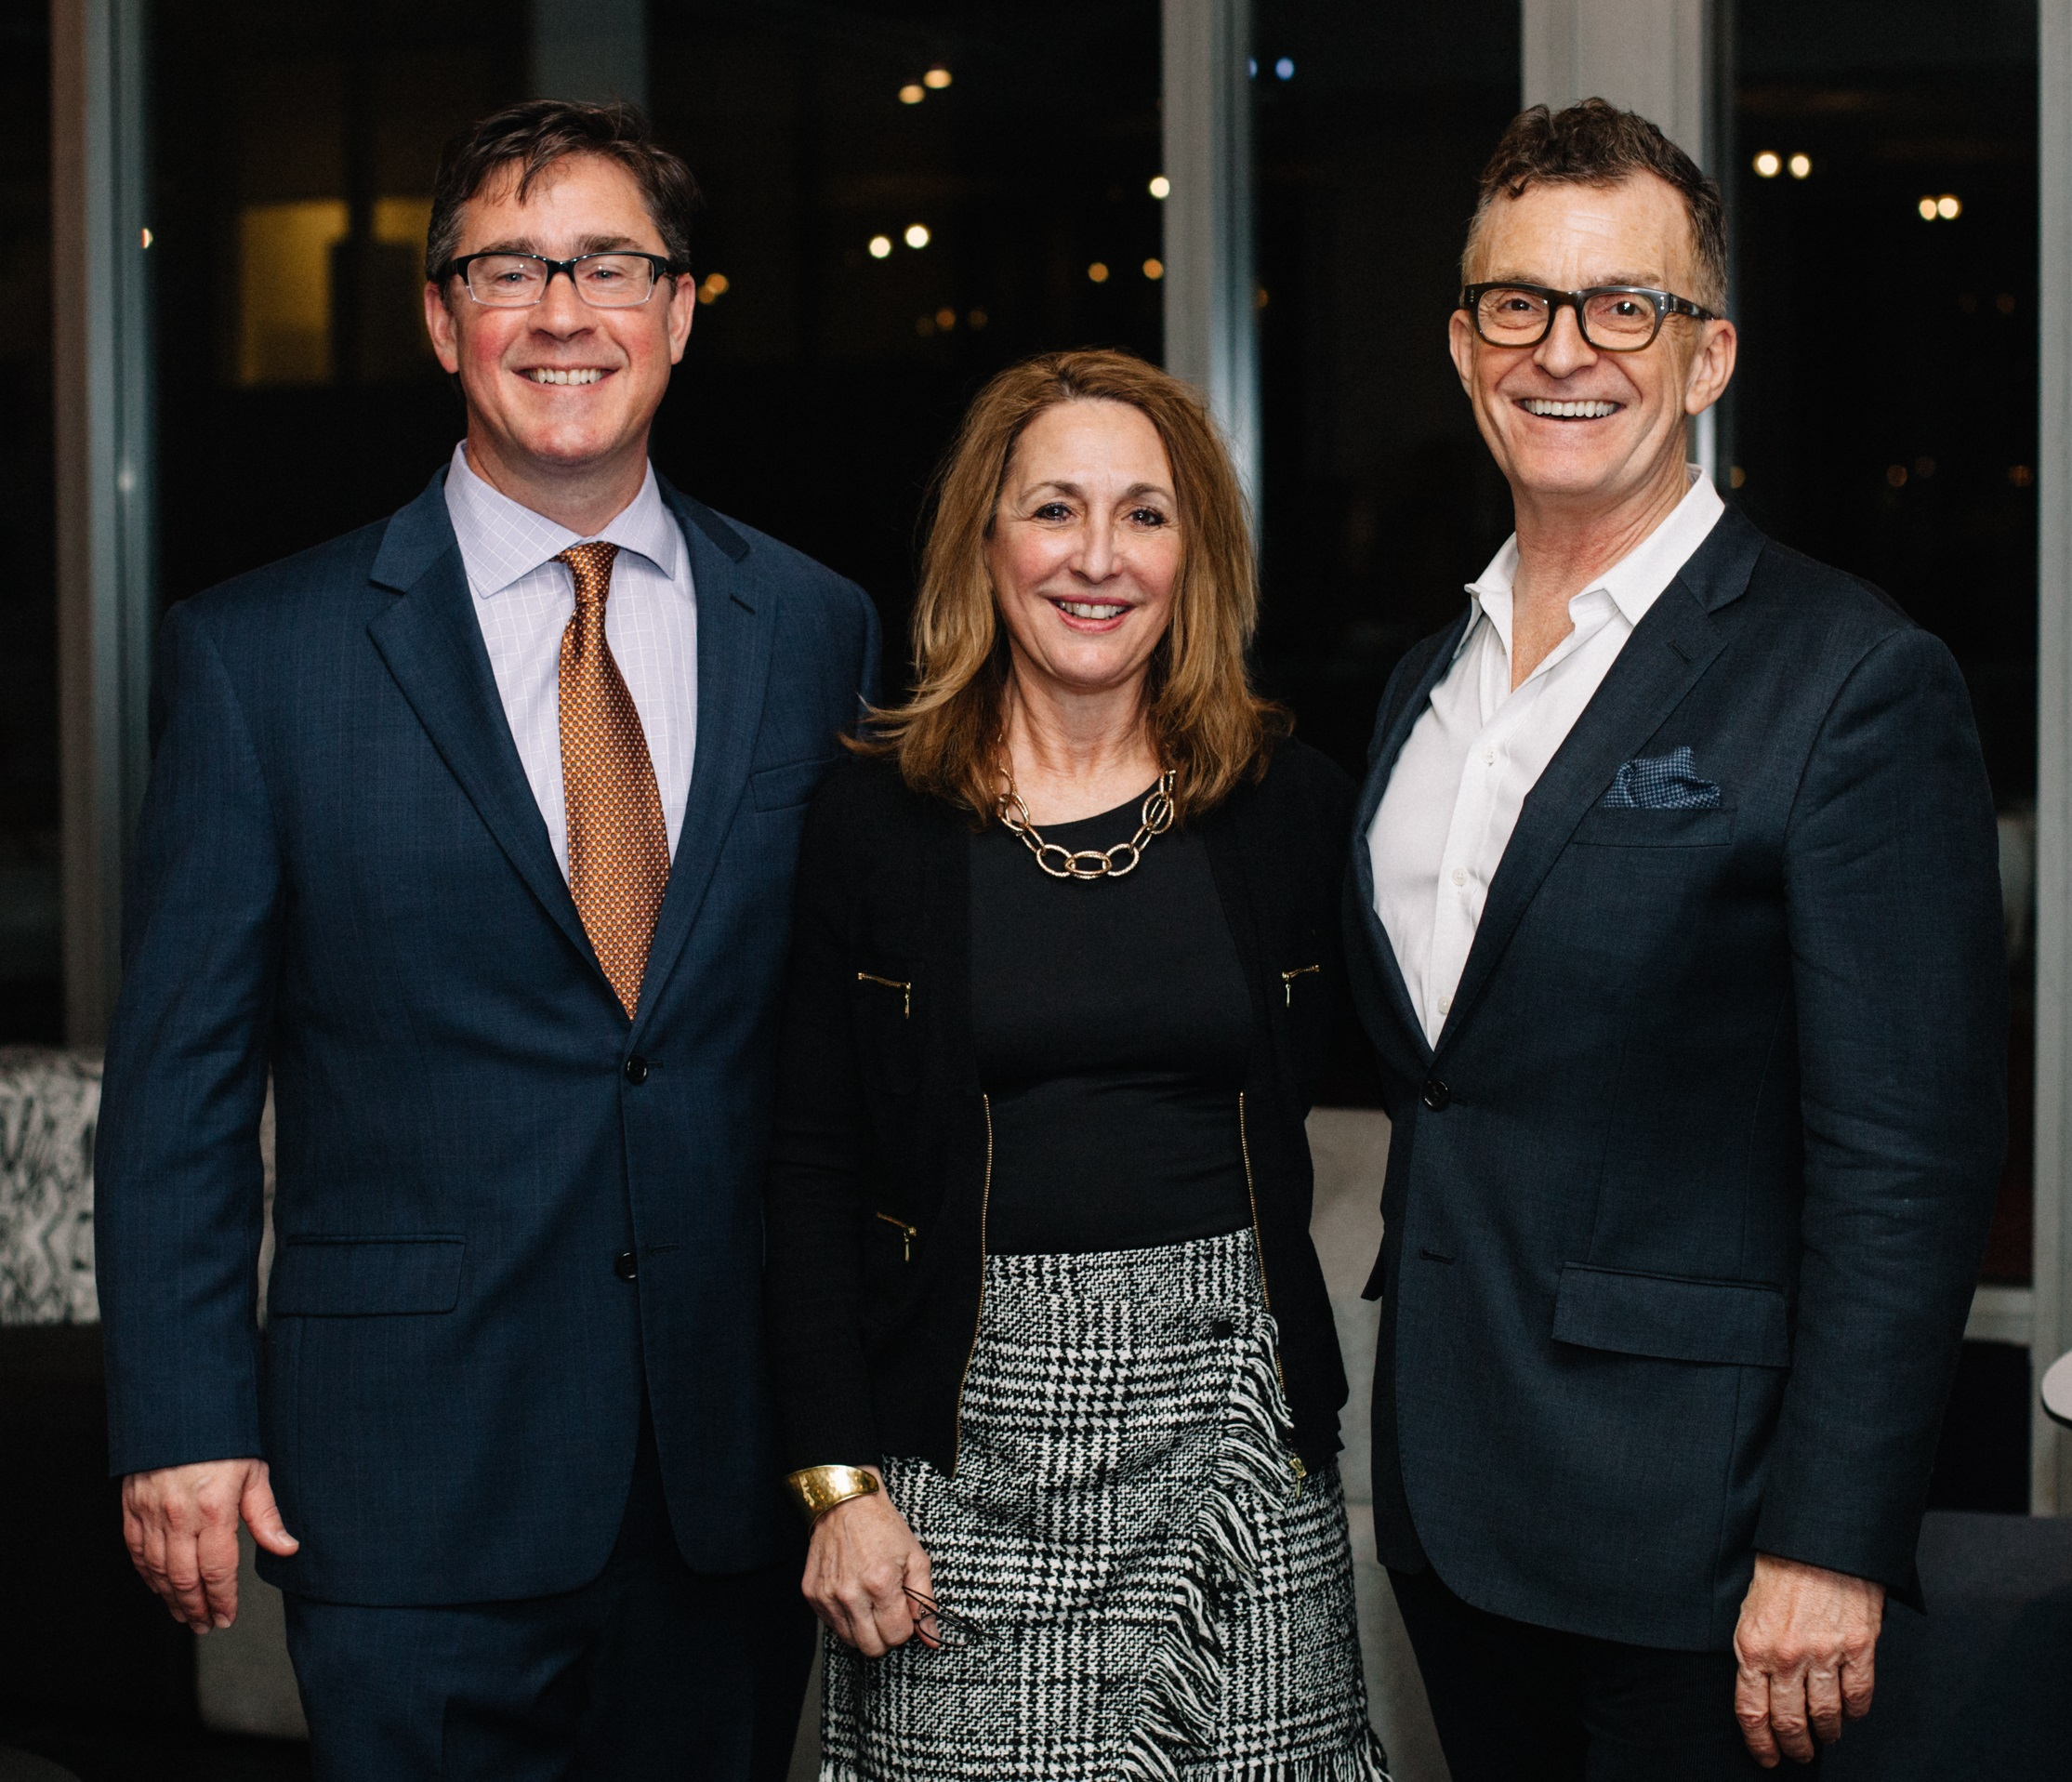 Thom Banks, executive director of CIDQ; Pamela Durante, president of IDLNY; and Glenn Gissler, president of ASID New York Metro